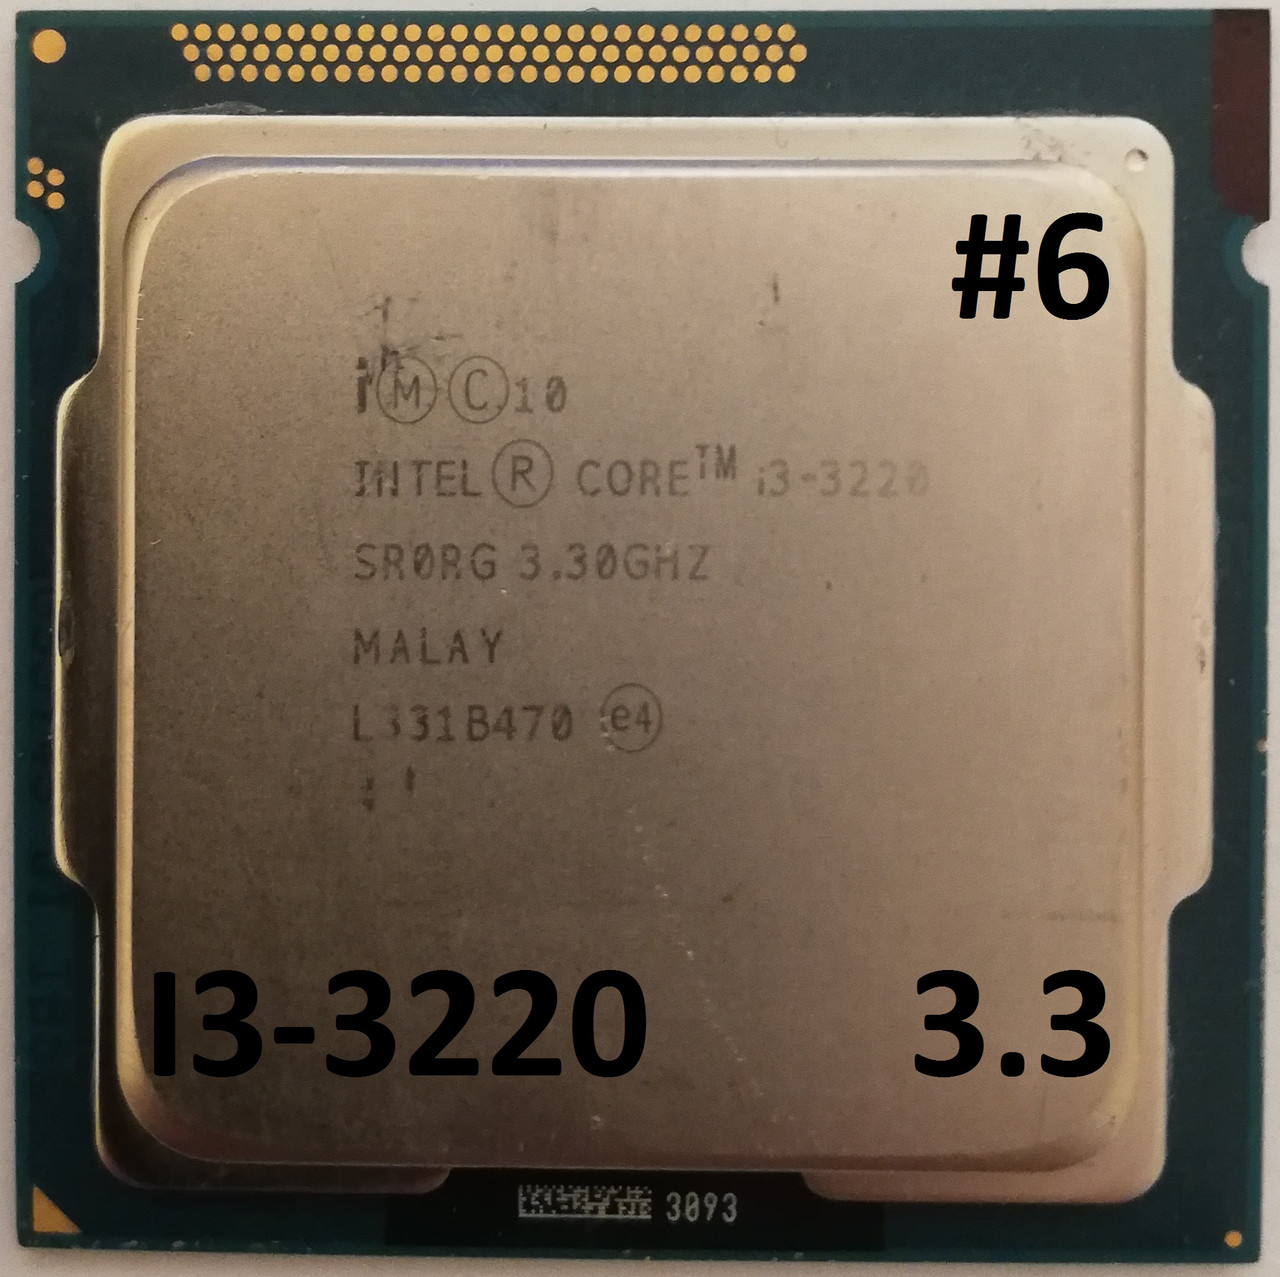 Процессор ЛОТ#6 Intel Core i3-3220 SRORG 3.3GHz 3M Cache Socket 1155 Б/У